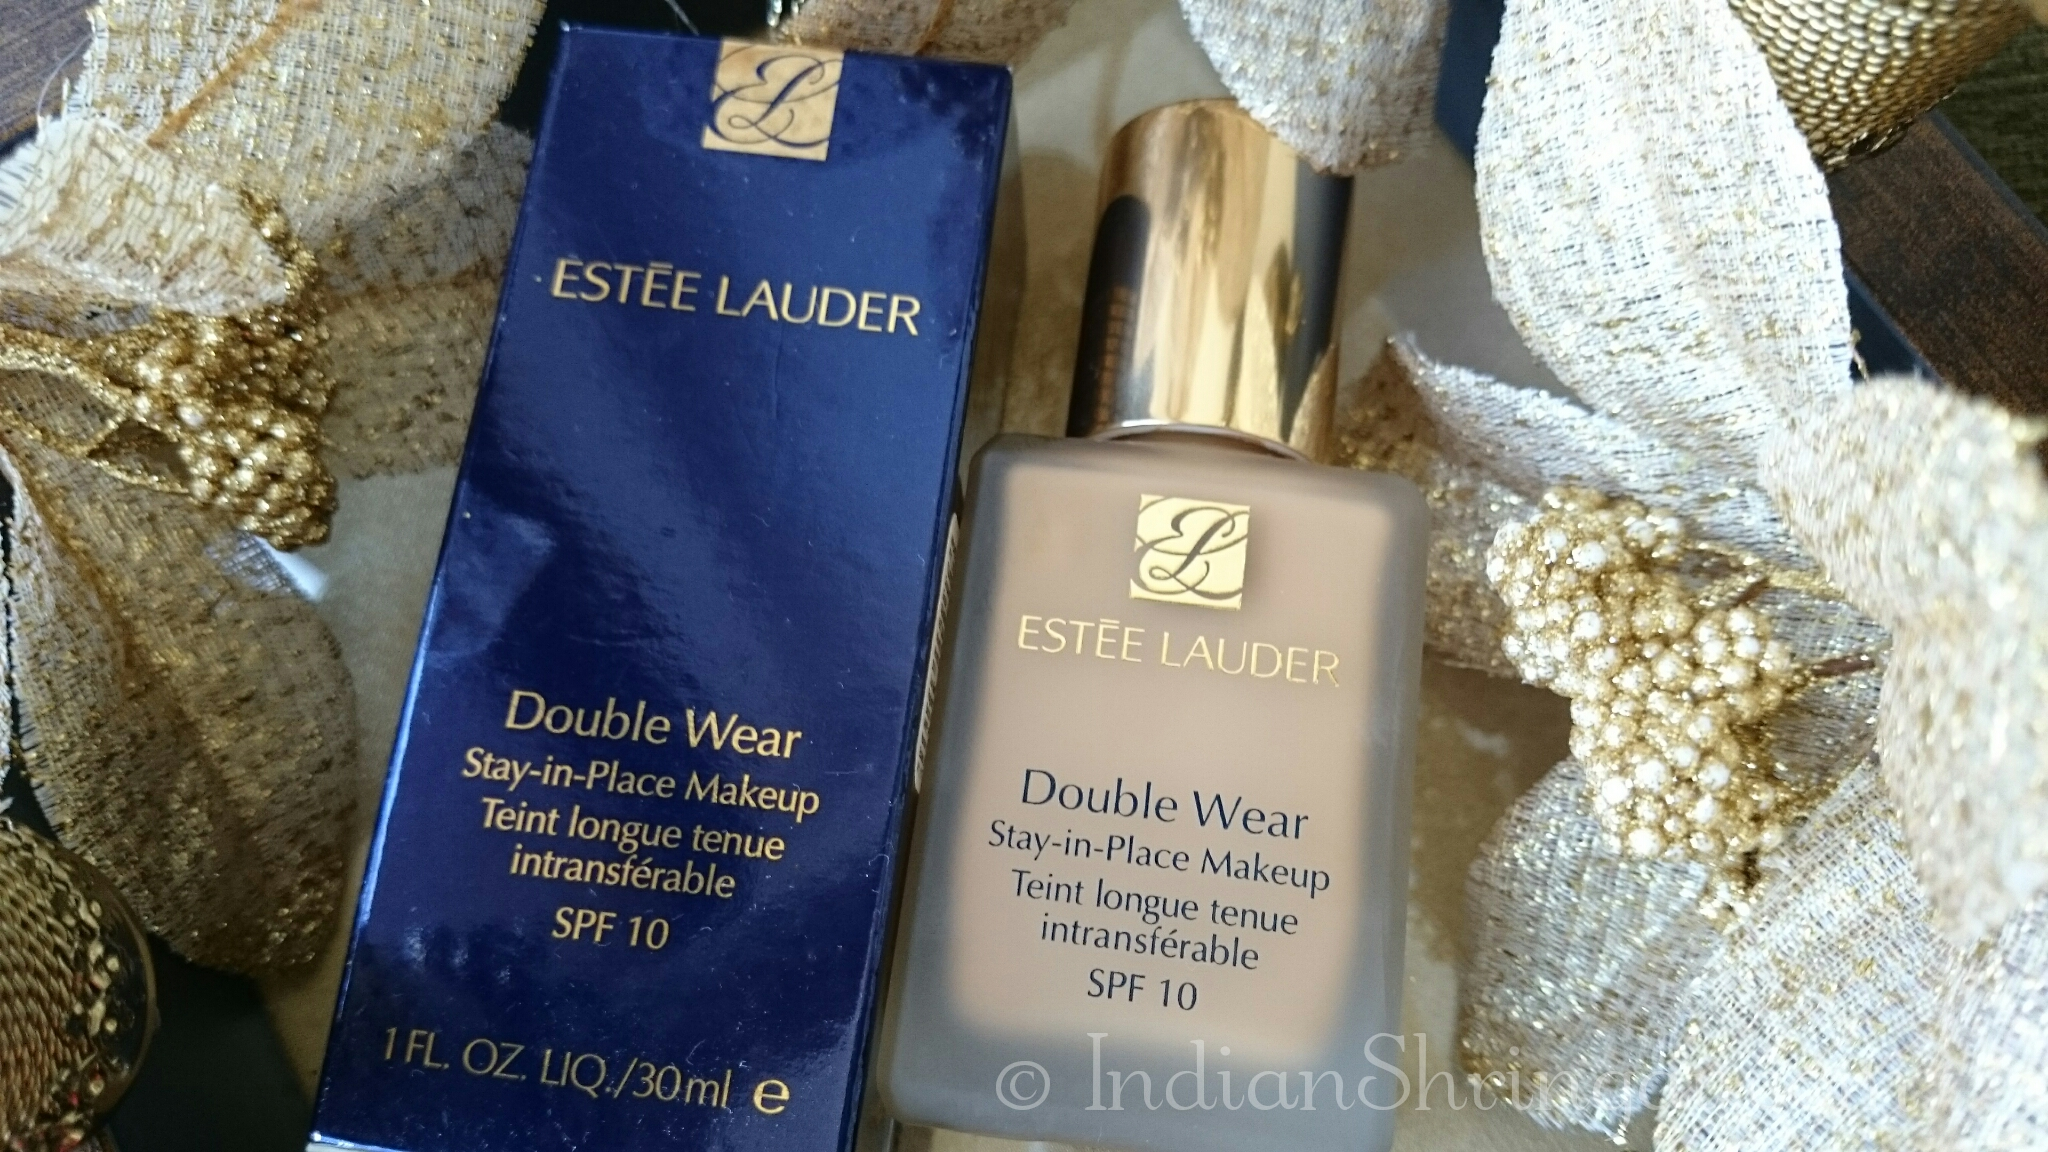 Estee Lauder Double Wear Foundation: Review, Swatch, FOTD and Price In India | The Bombay Brunette